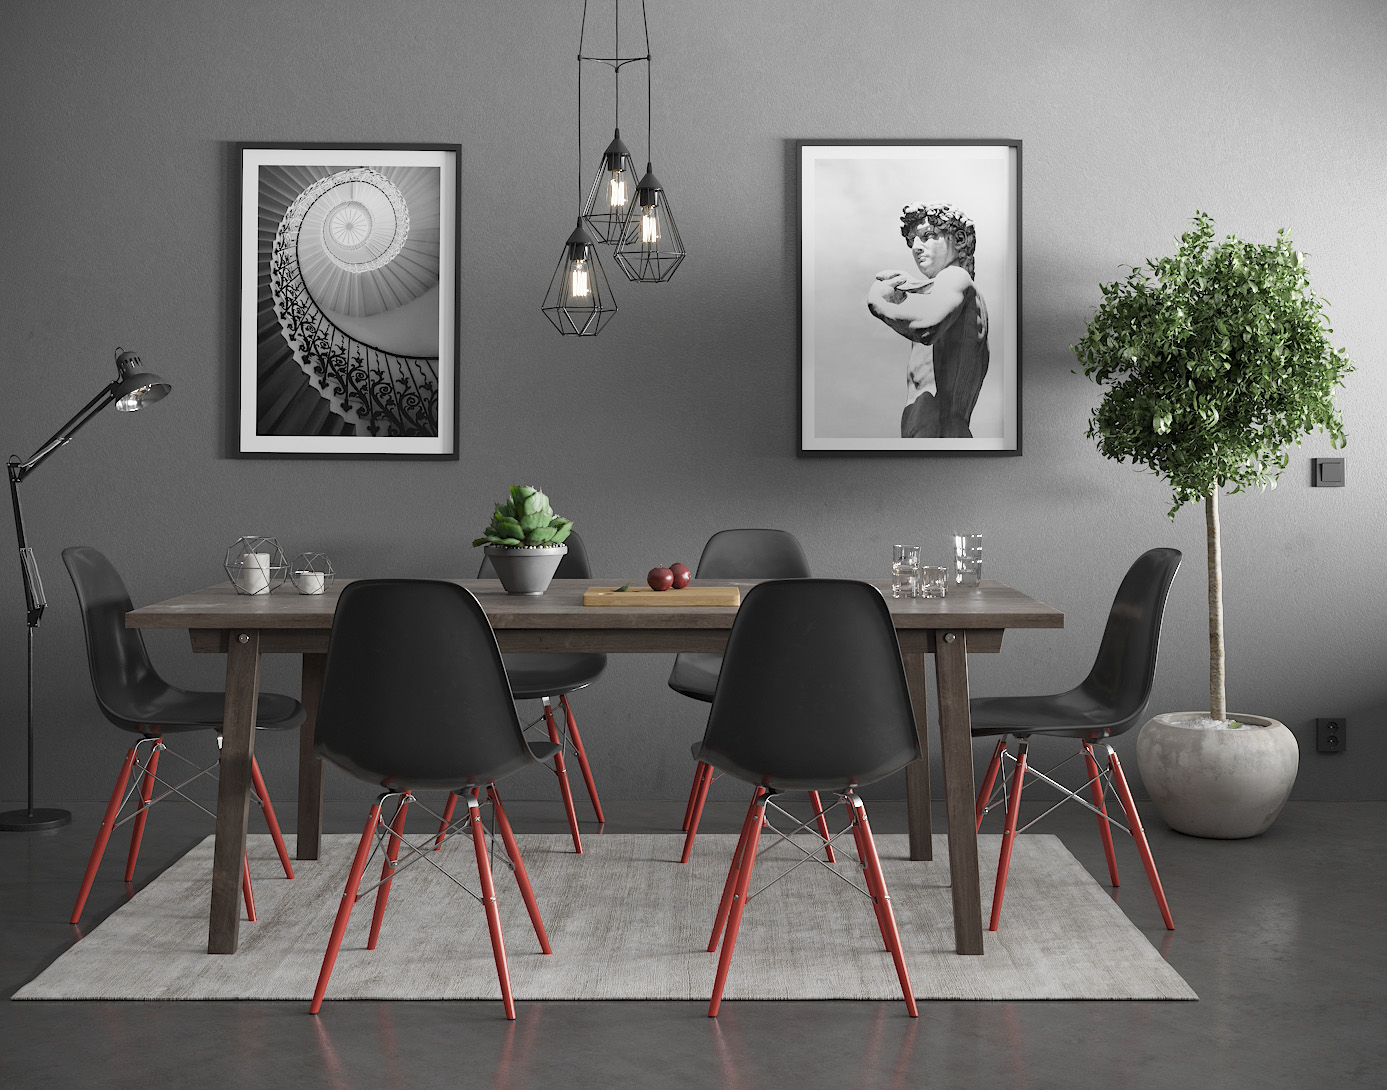 Dining-table realistic 3D visualization interior architecture CGI high-end top quality scandinavian illustration photorealistic